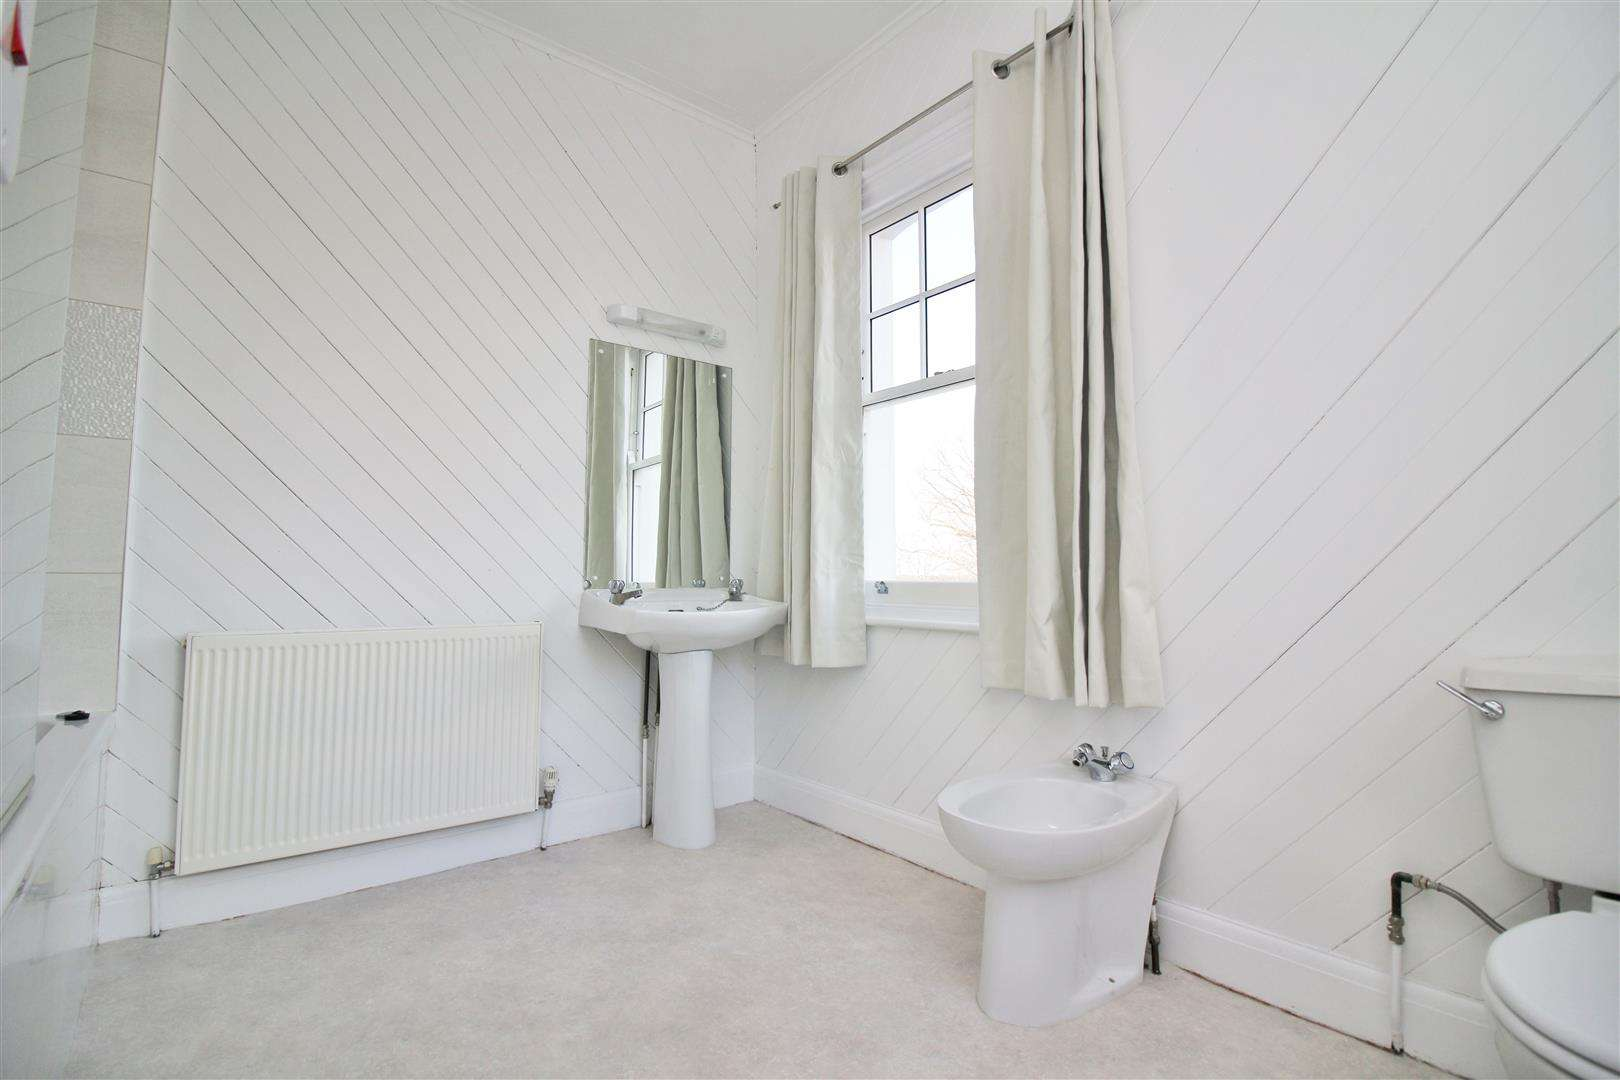 5 bed to rent - (Property Image 15)